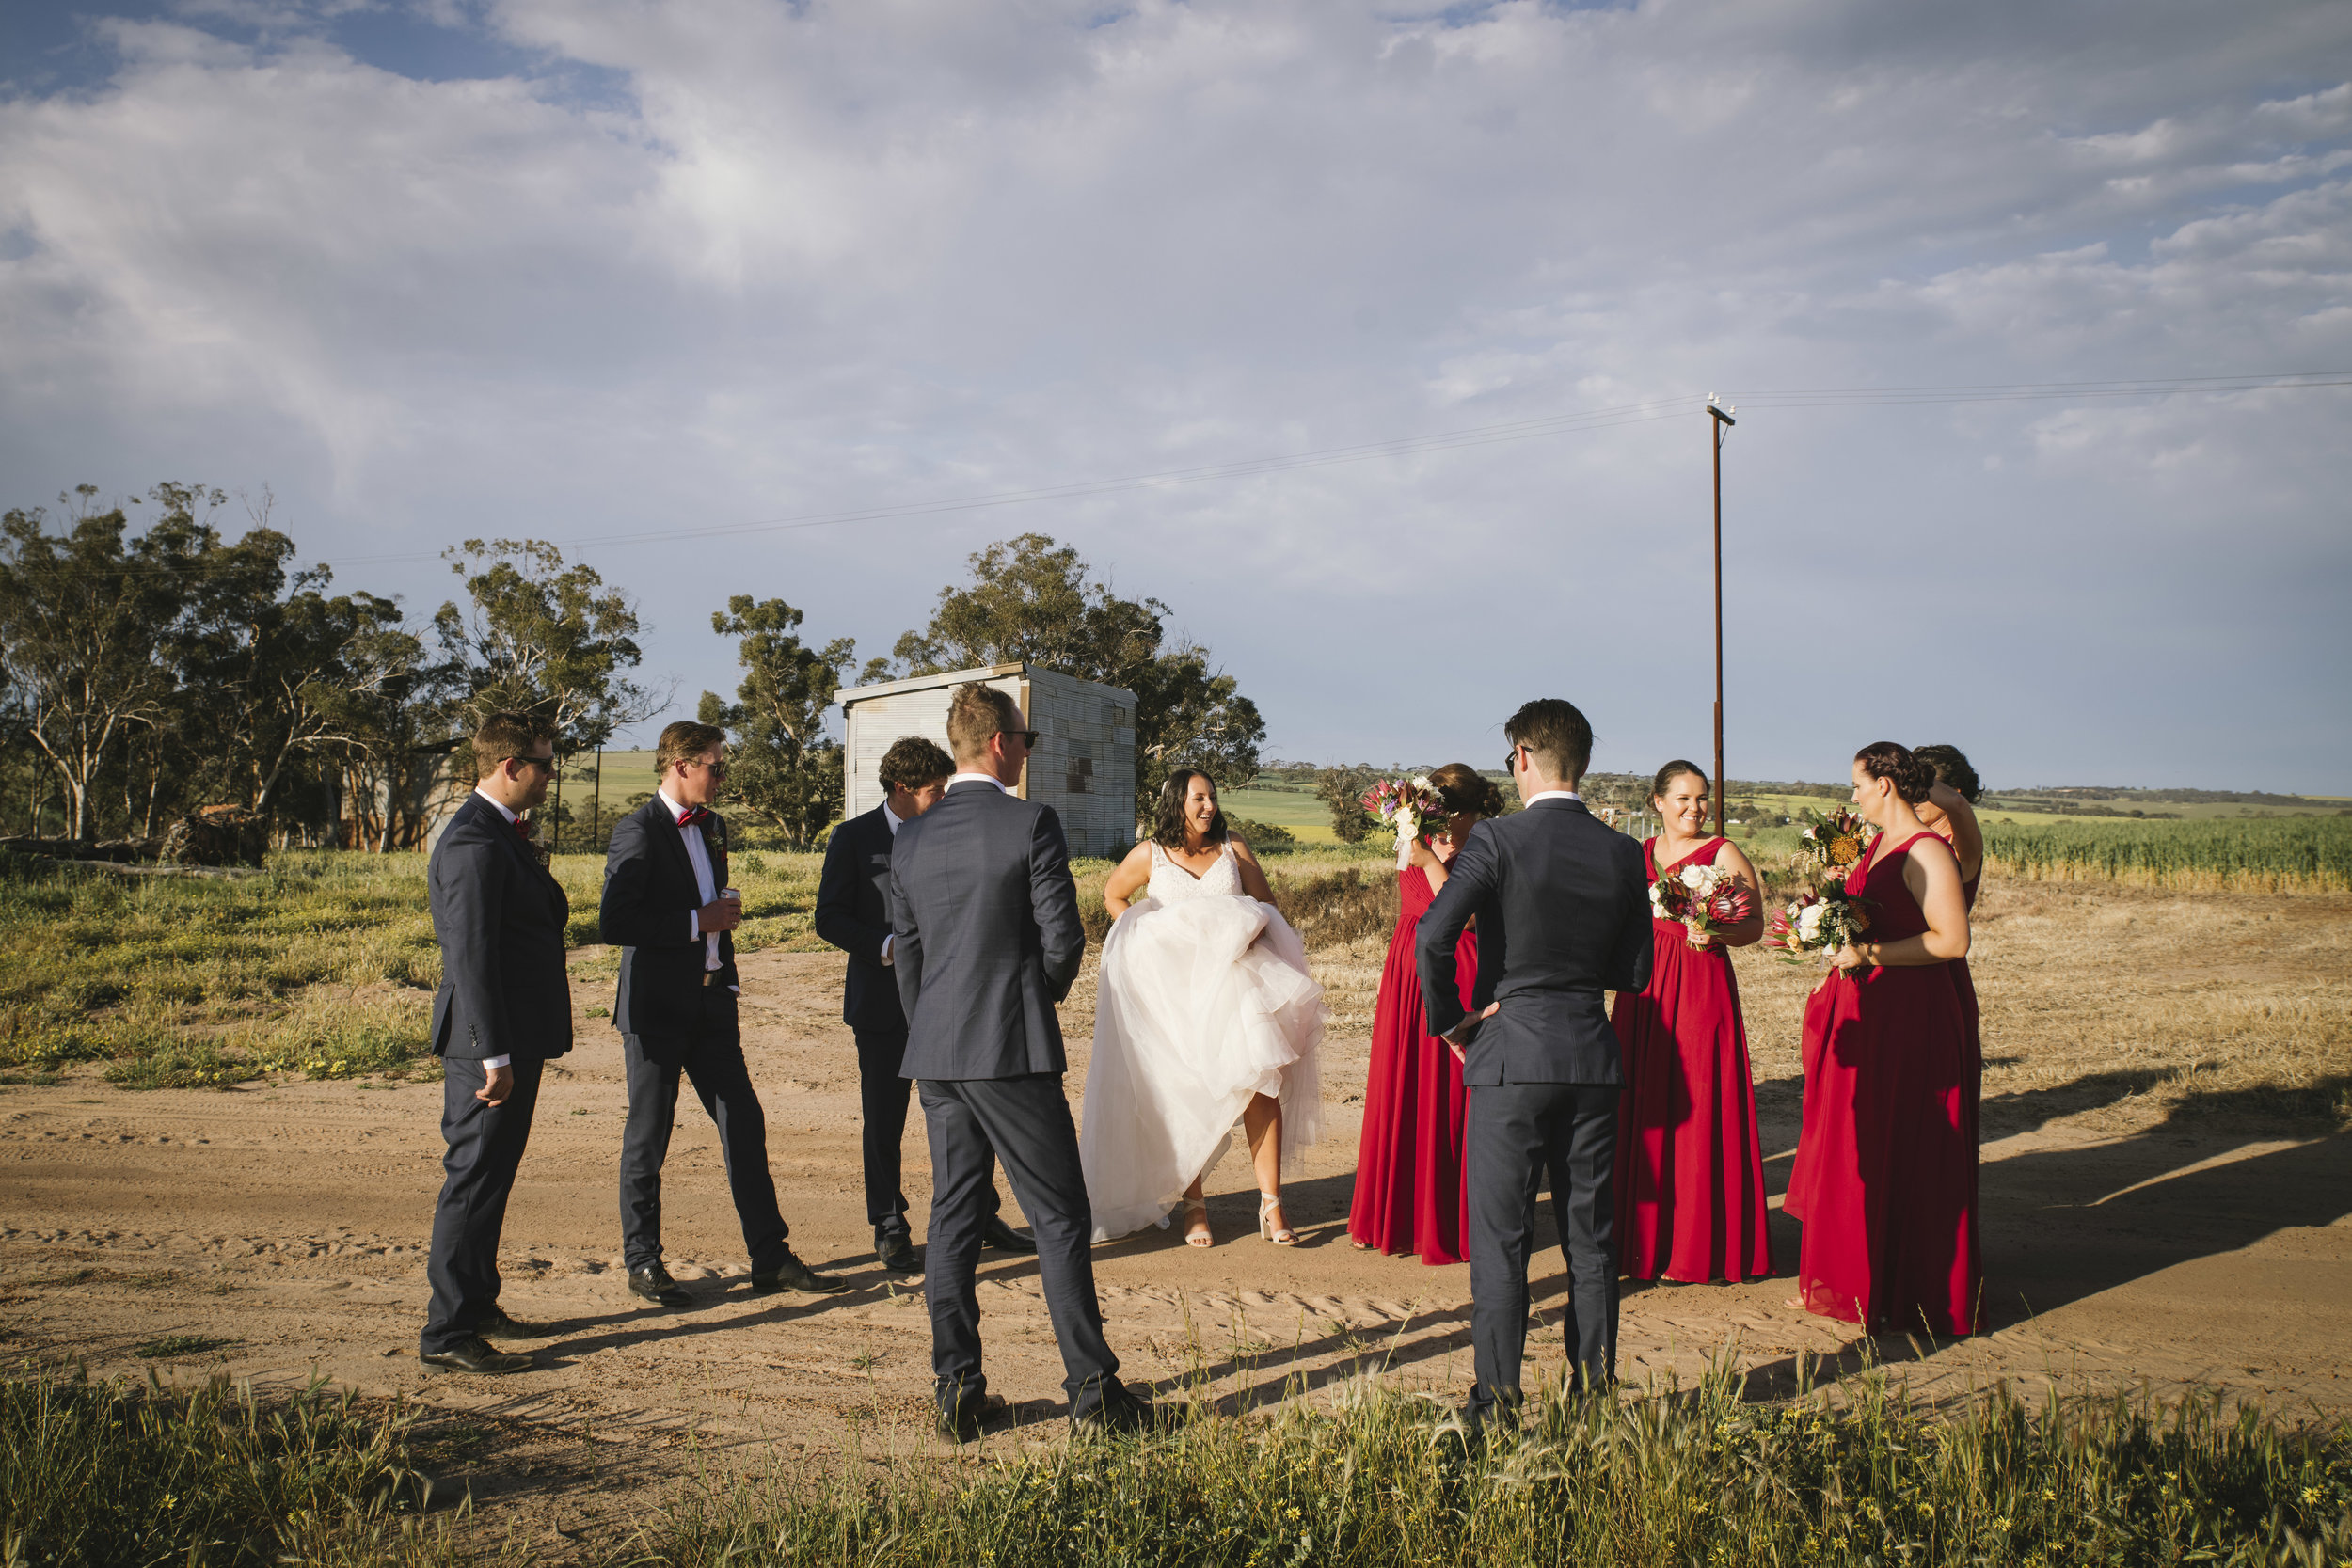 Angie Roe Photography Wheatbelt Avon Valley Farm Wedding (41).jpg